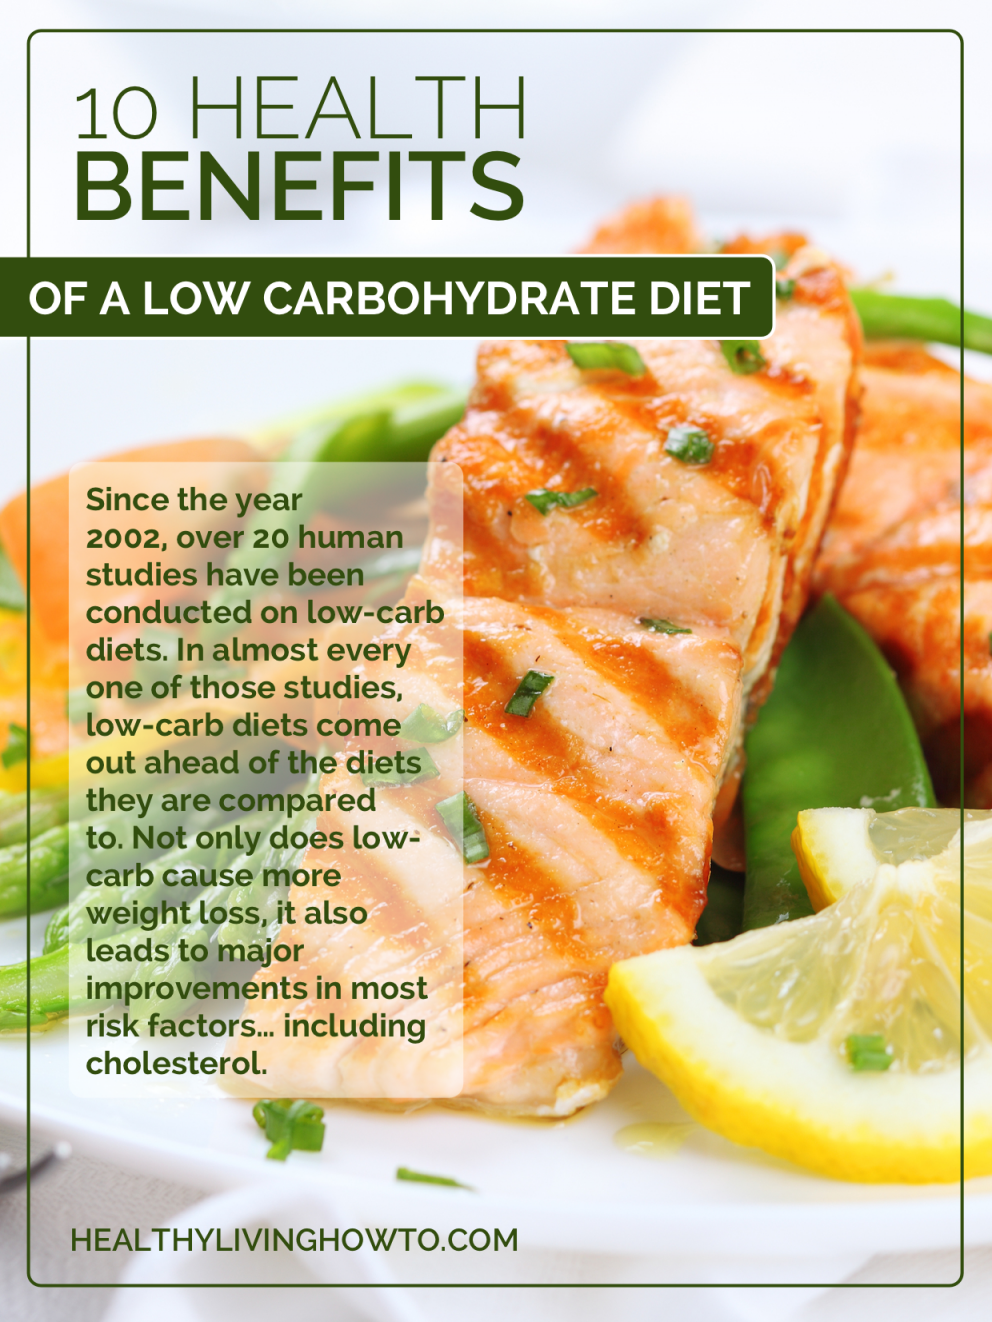 10 Health Benefits of a Low Carbohydrate Diet | healthylivinghowto.com